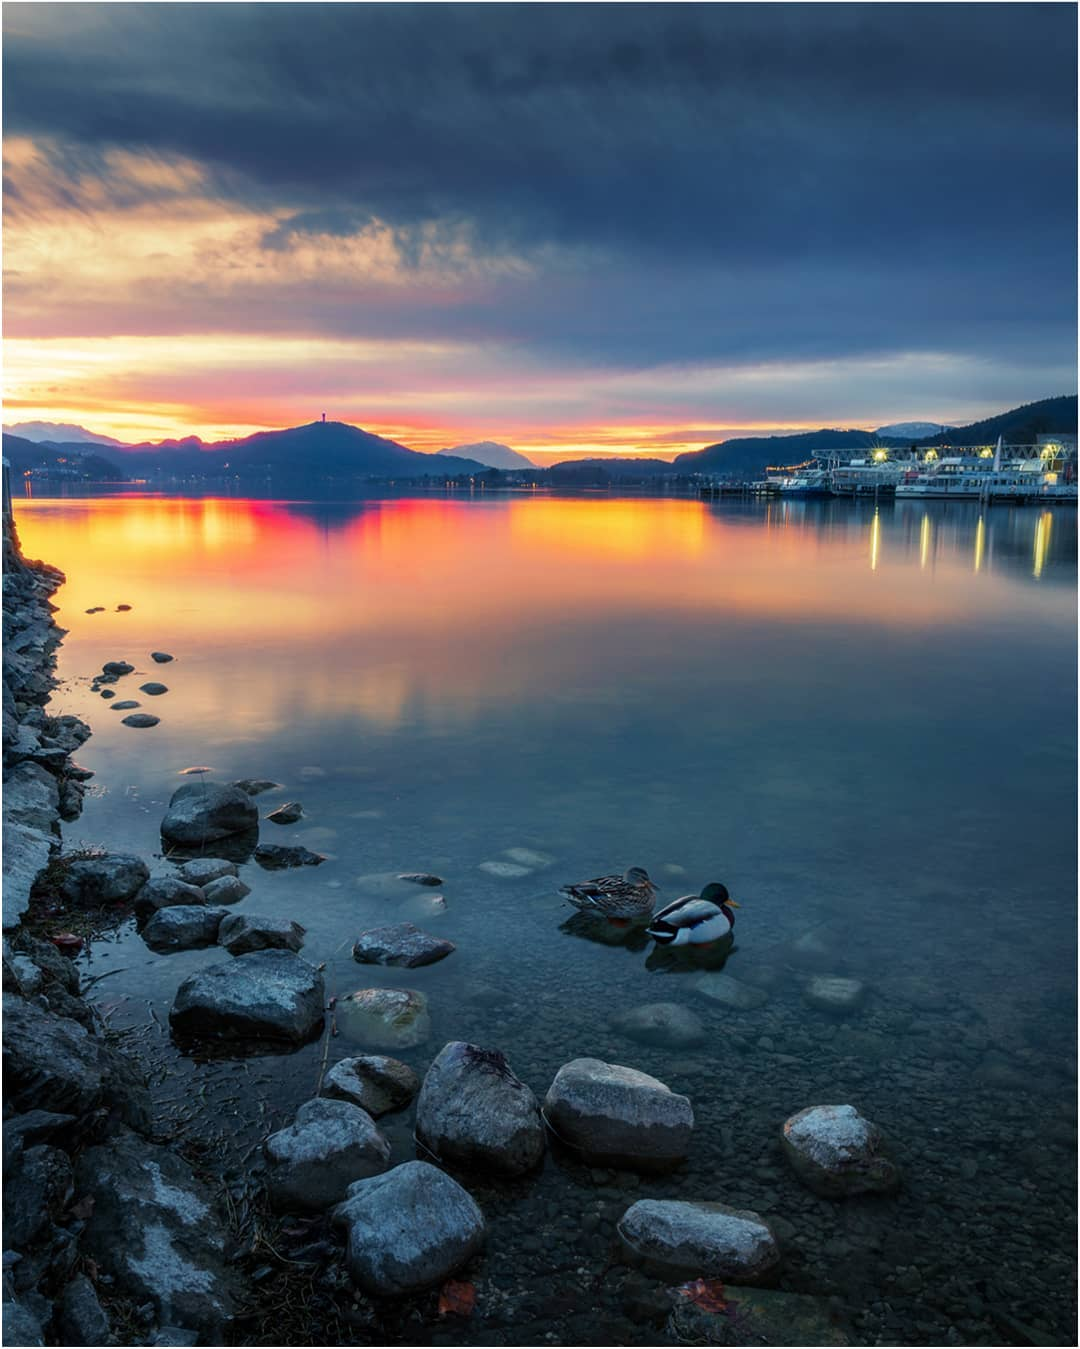 Sunset at Lake Woerthersee